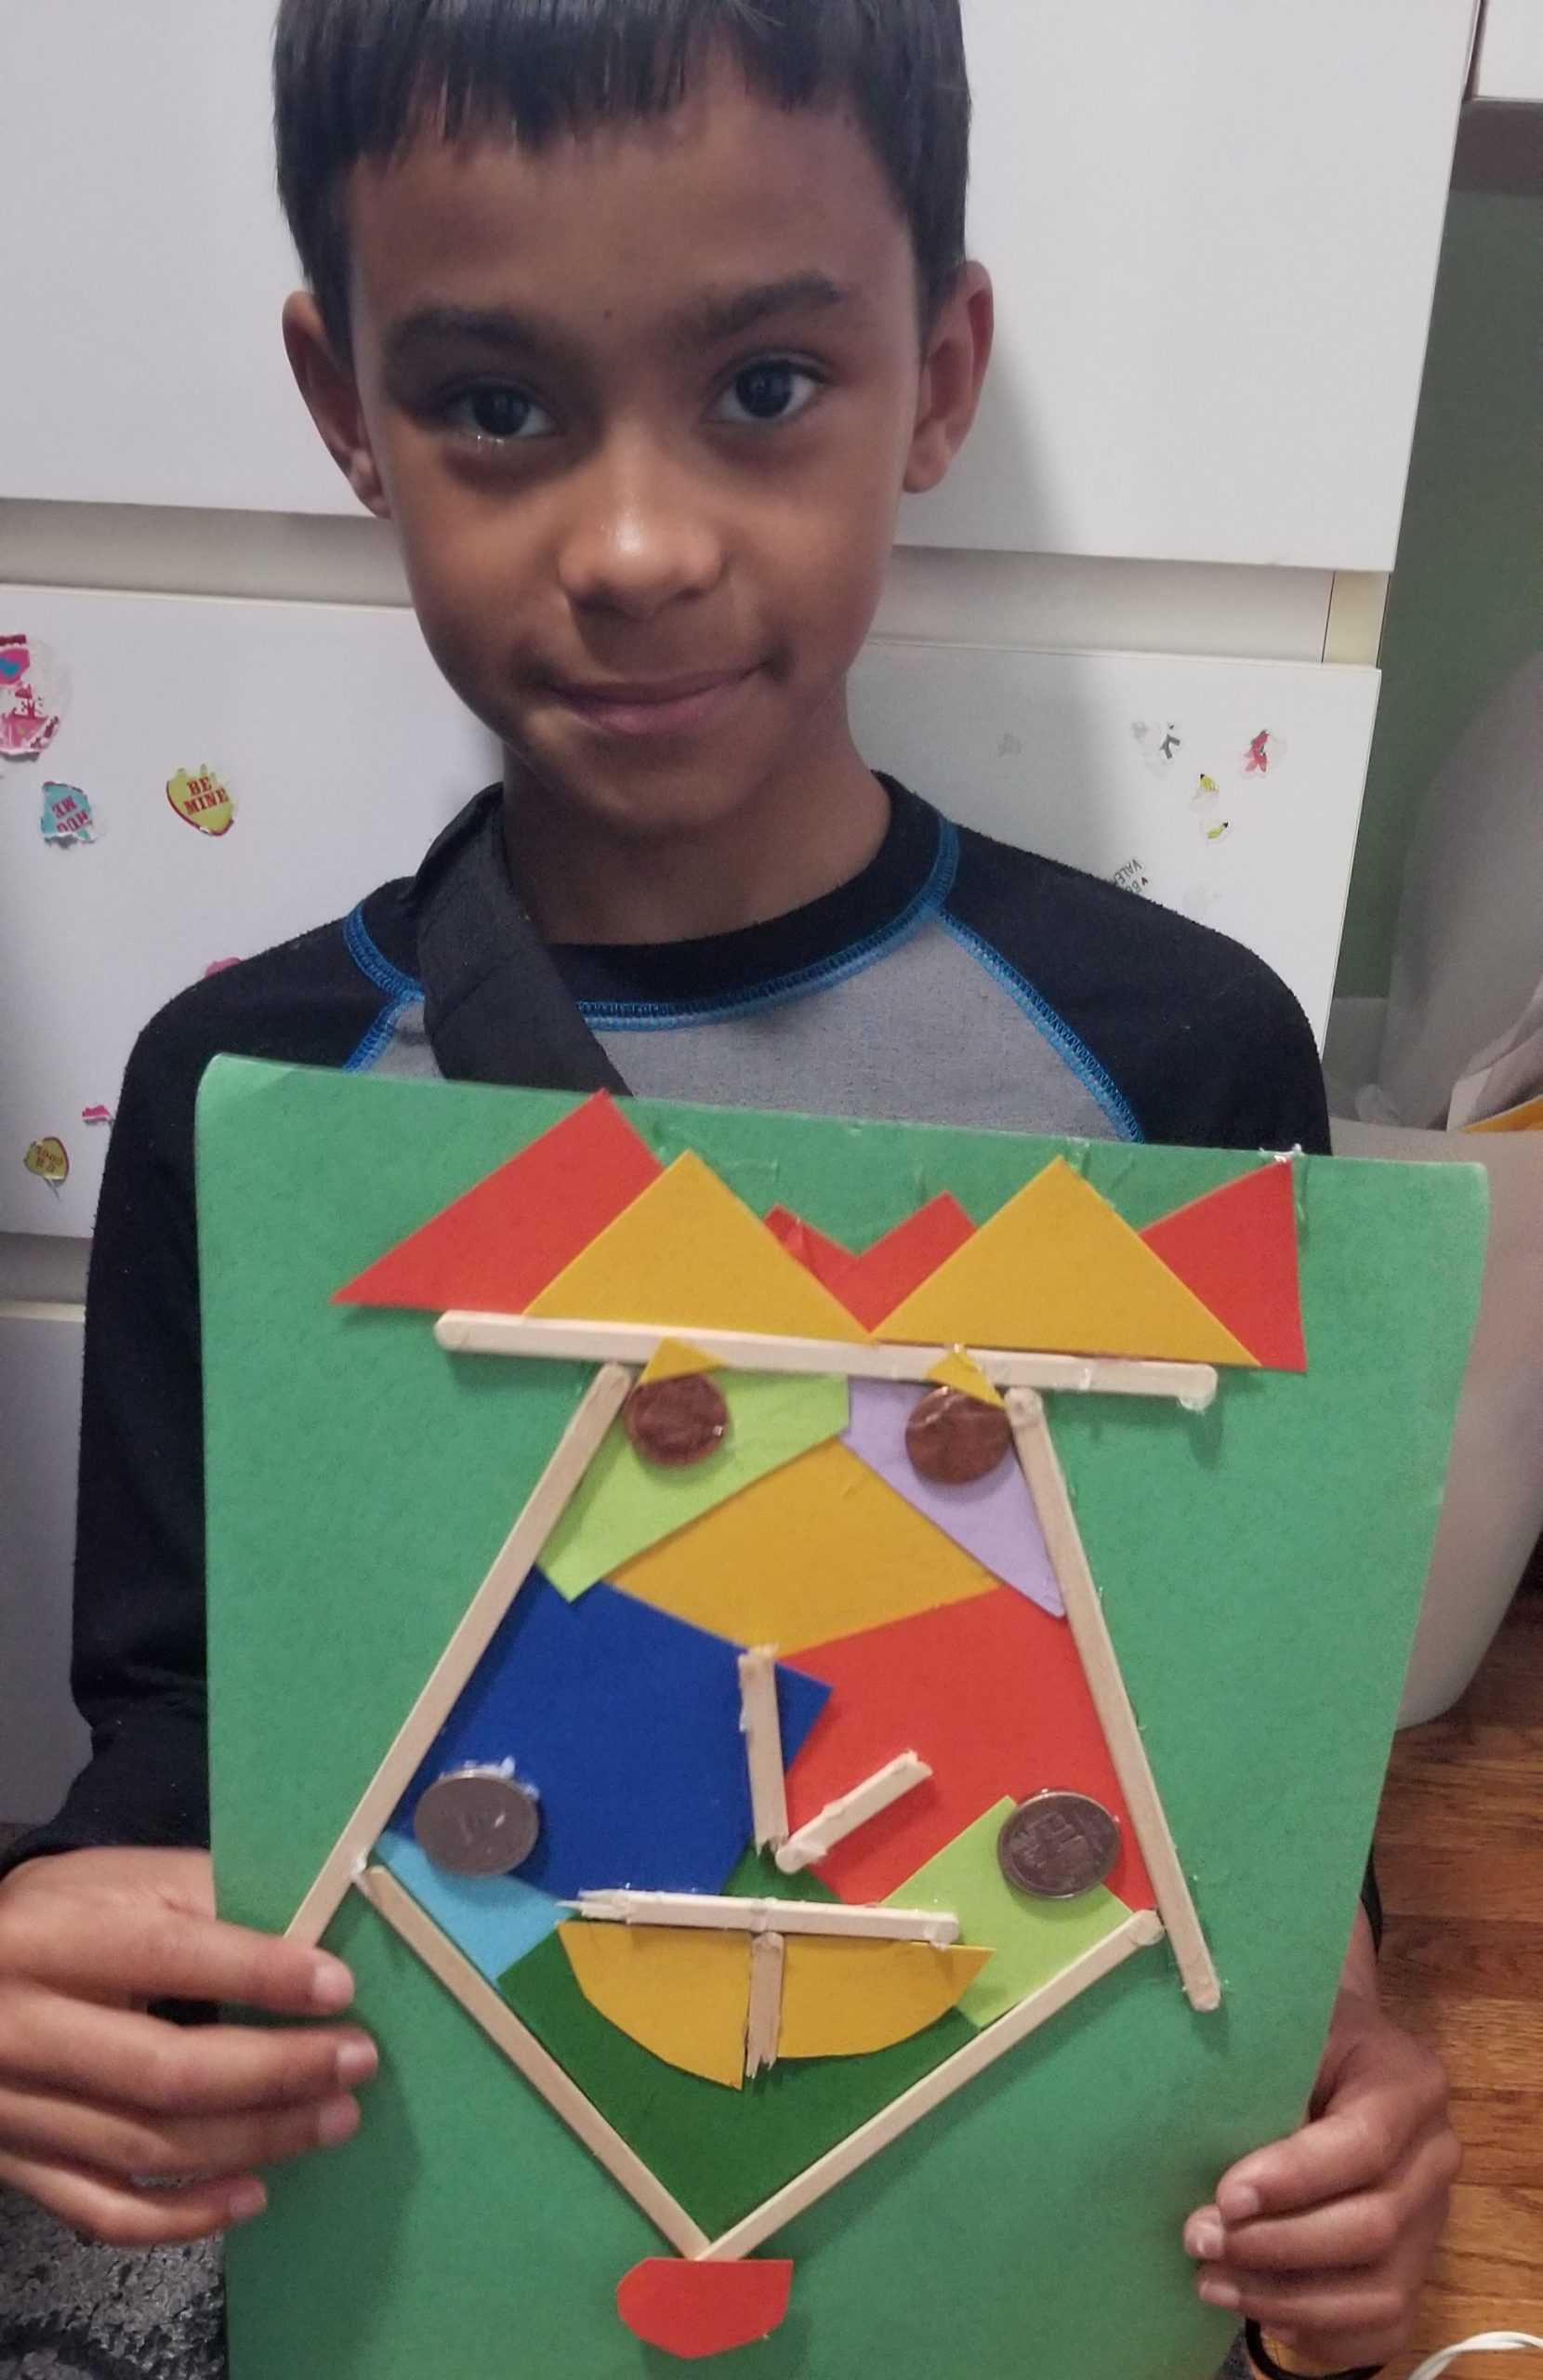 Picasso Inspired 3D Face